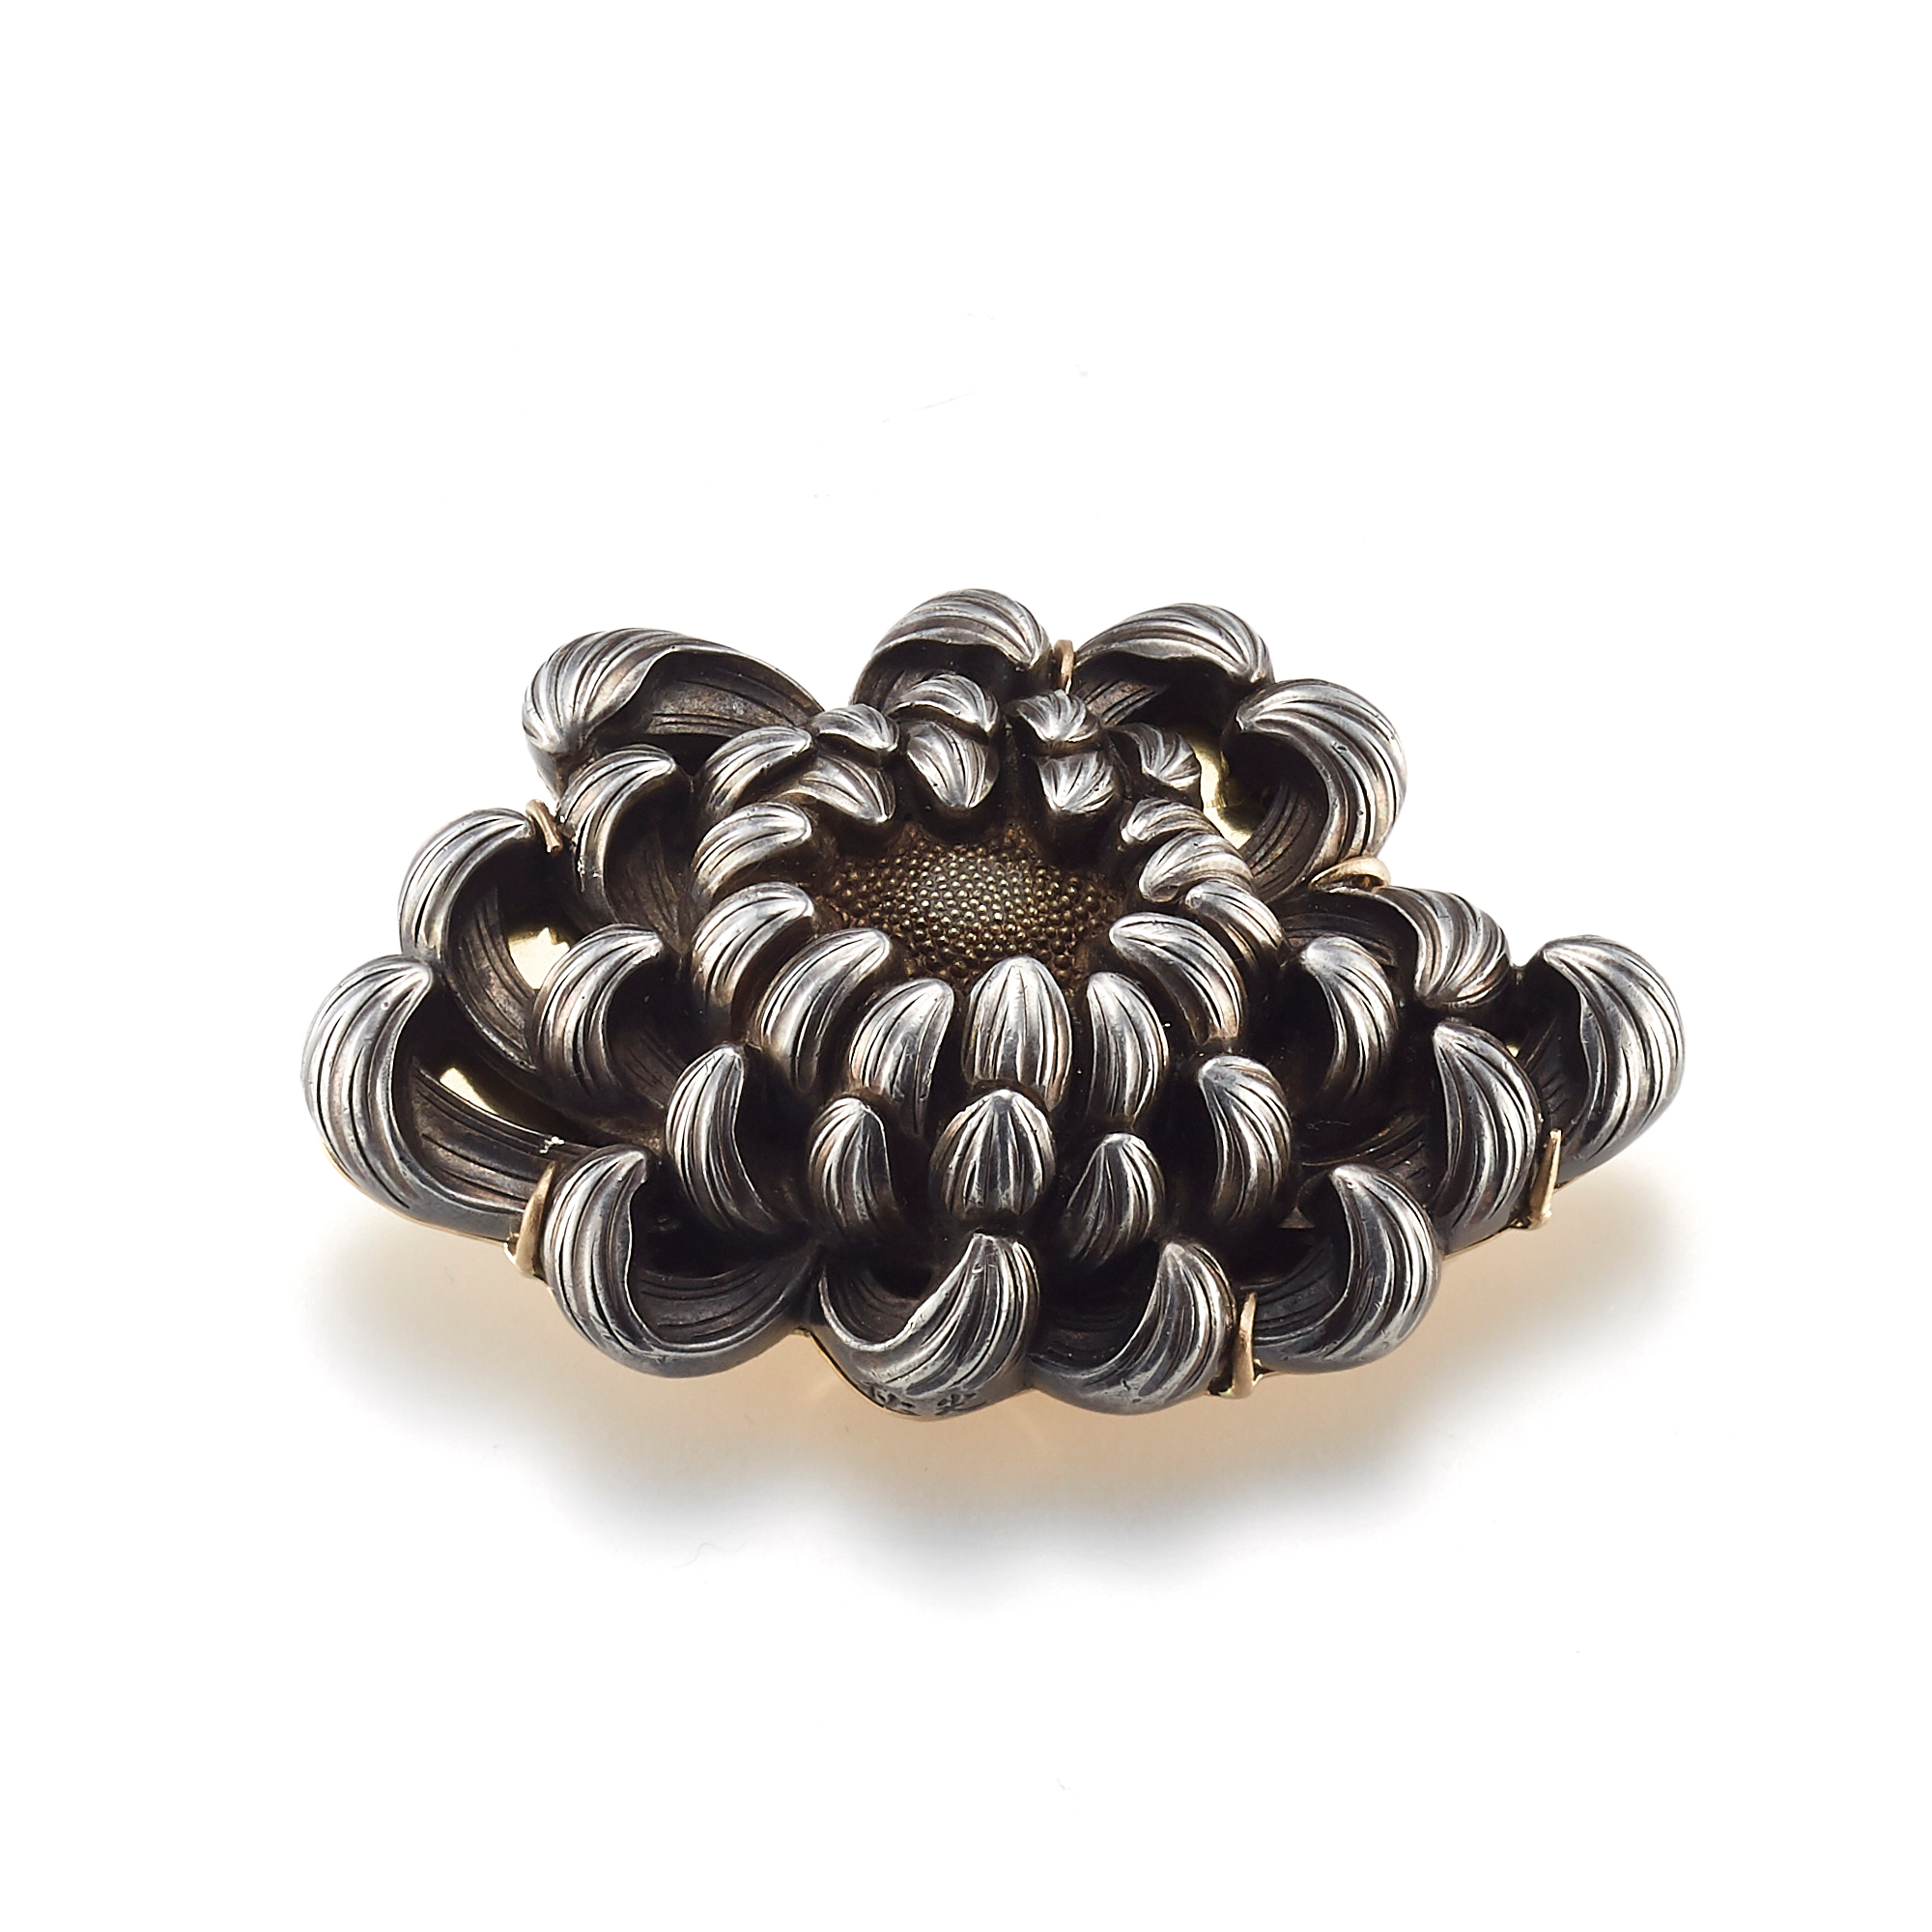 Gump's Antique Silver Chrysanthemum Obi-Dome Brooch